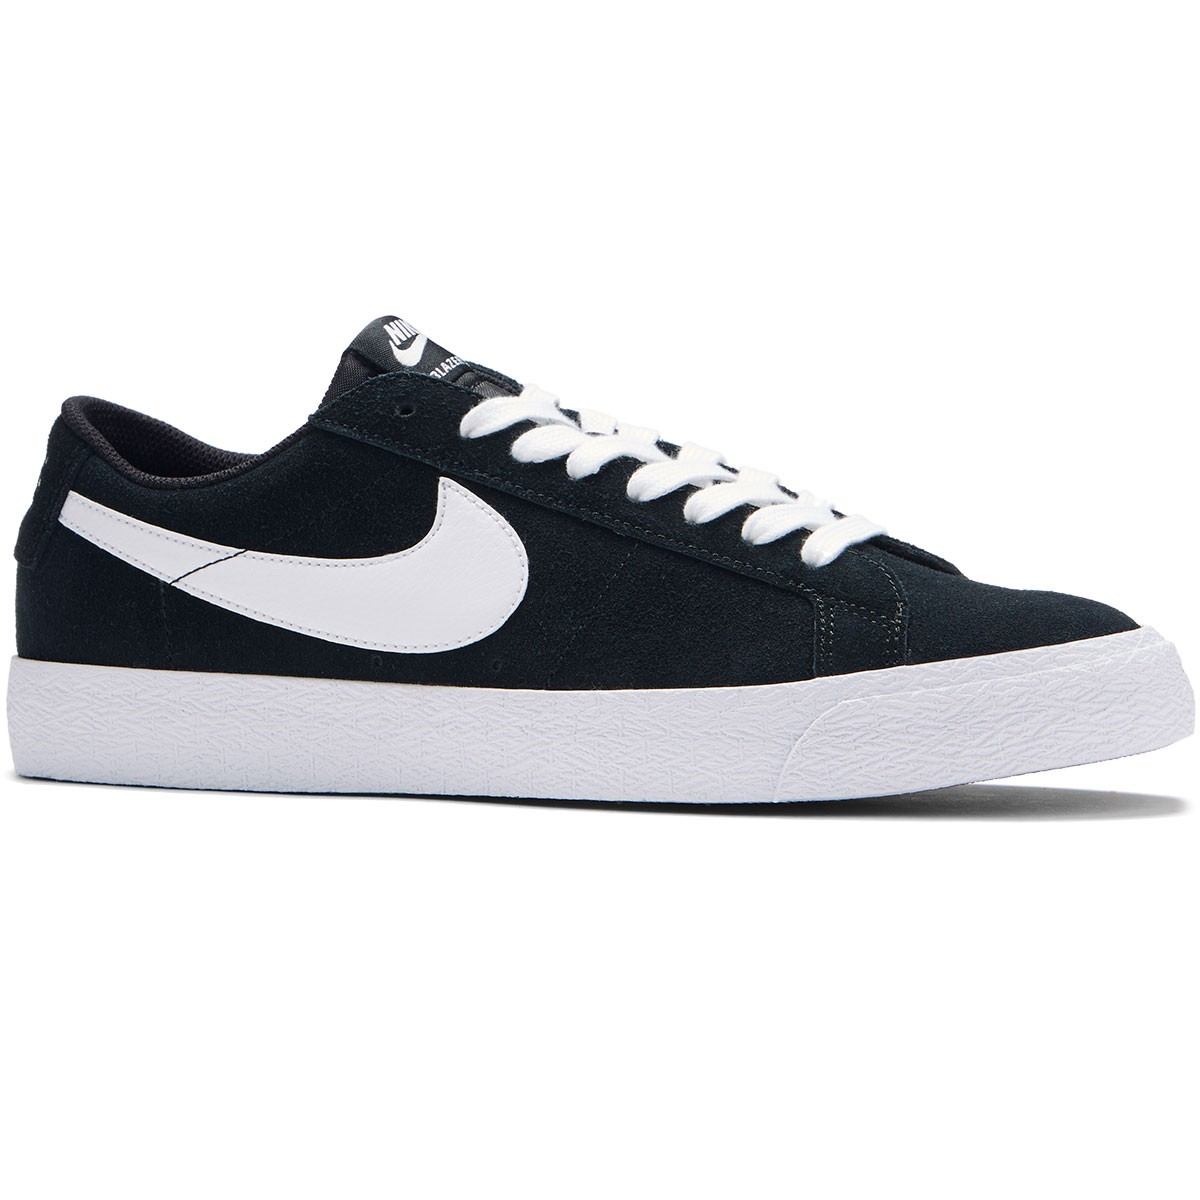 on sale 2ea43 f01b3 Nike SB Air Zoom Blazer Low Shoes - Black White Gum Light Brown -